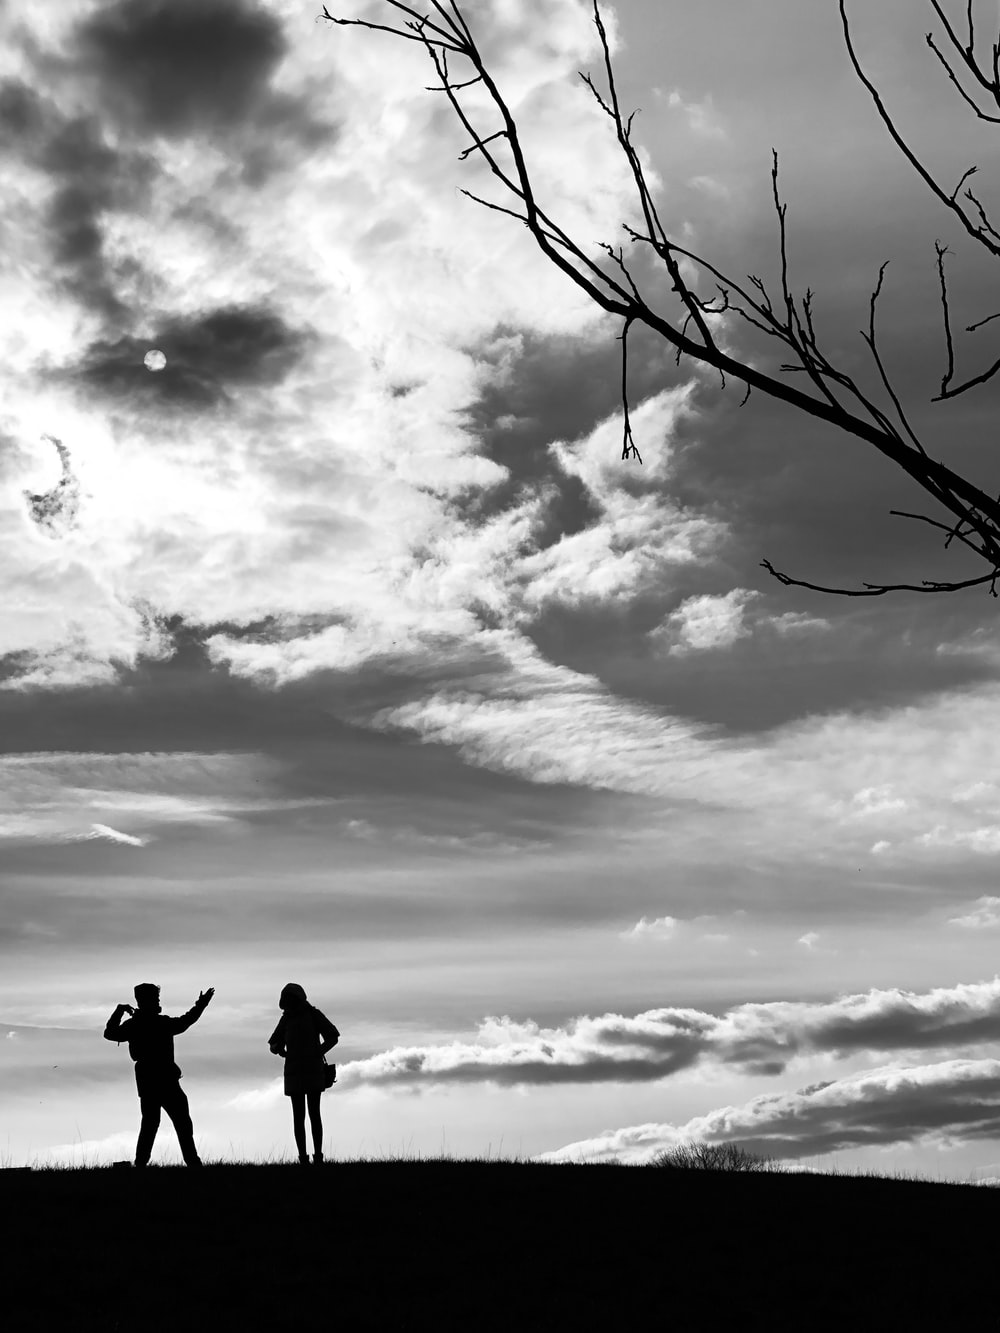 silhouette of 2 person standing on tree branch under cloudy sky during daytime